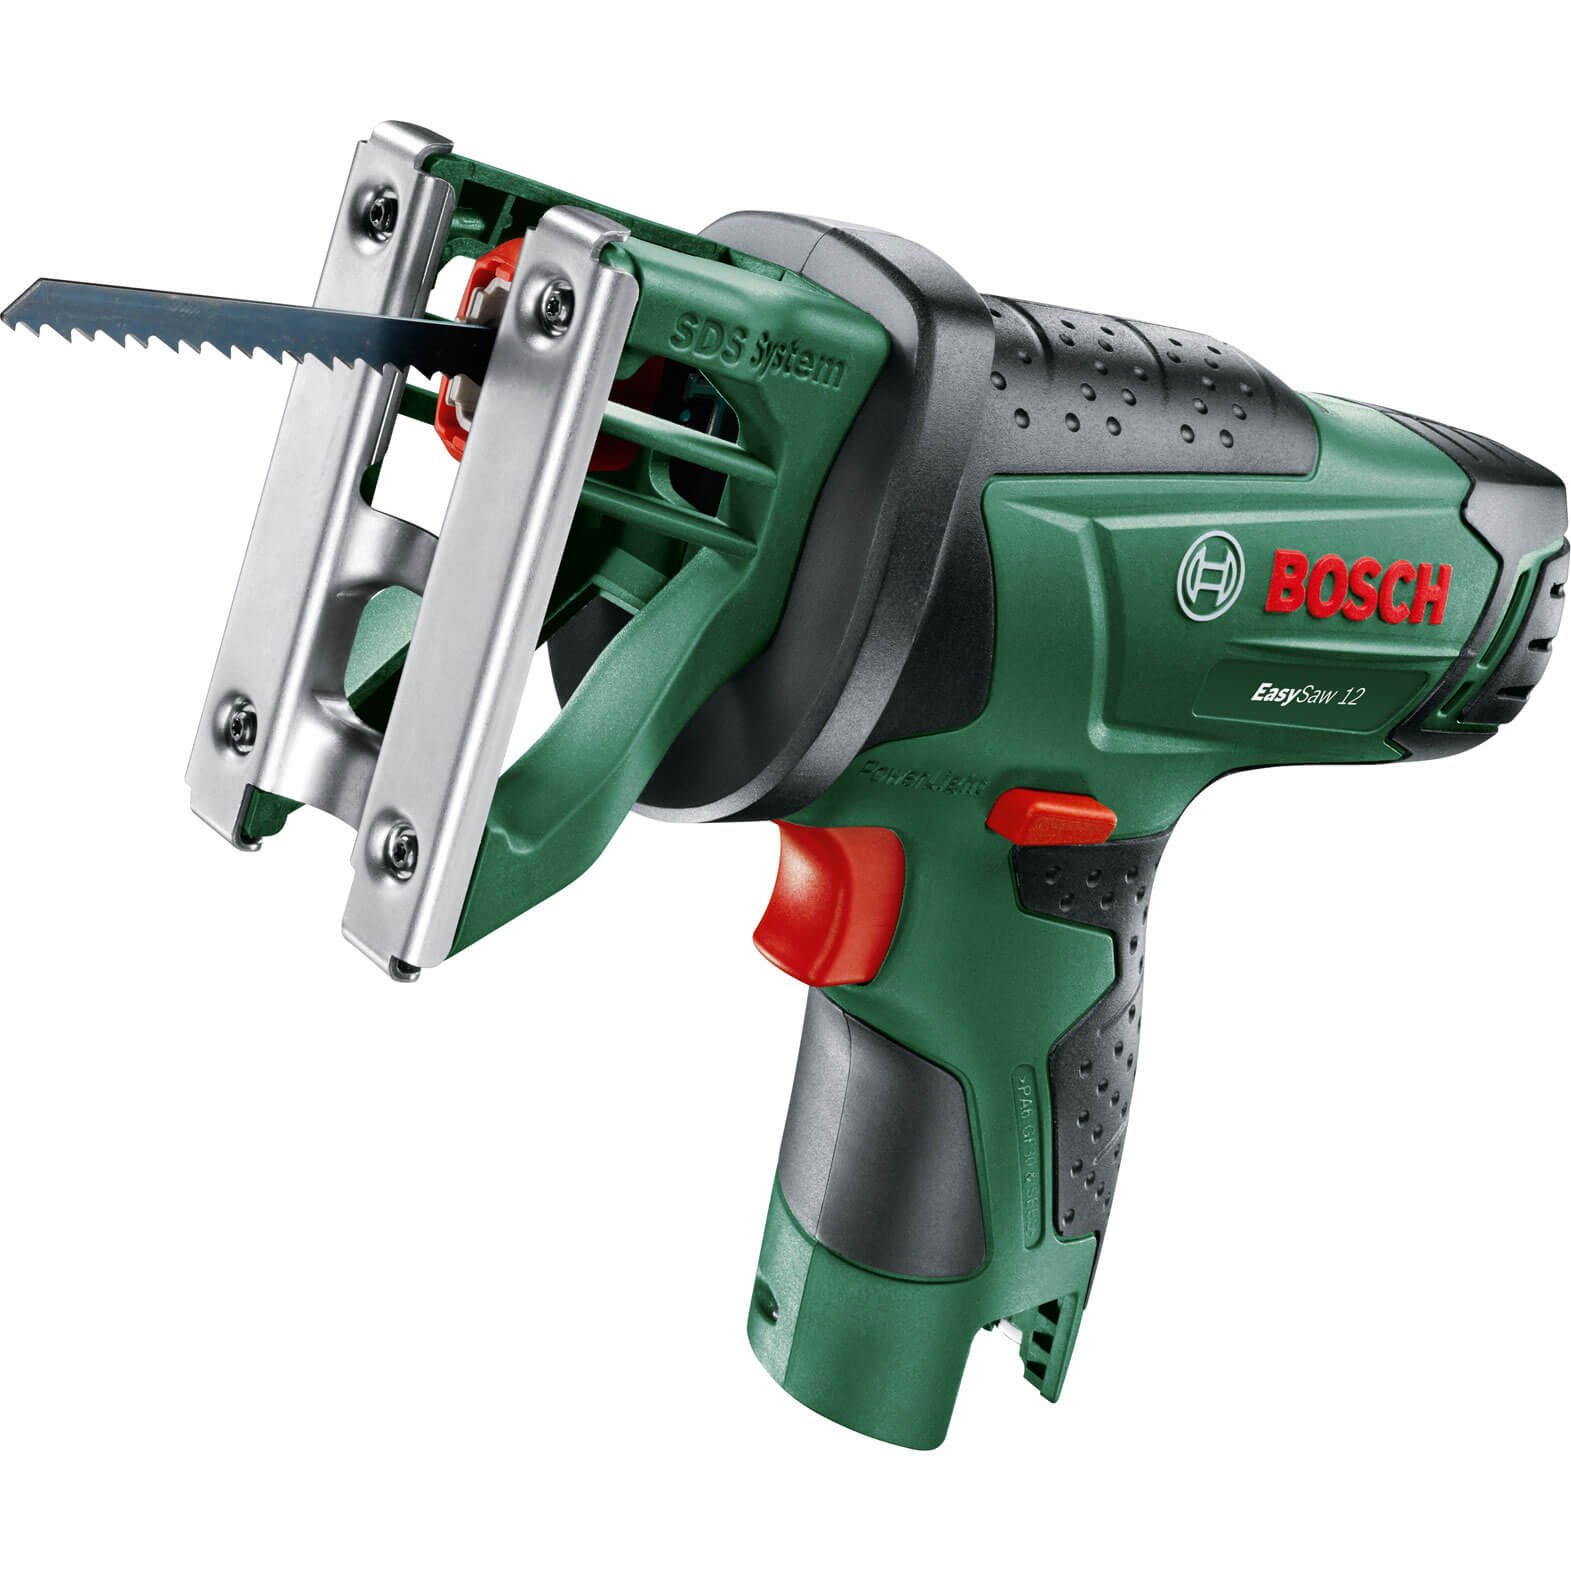 Bosch EASYSAW 12v Cordless Jigsaw No Batteries No Charger No Case